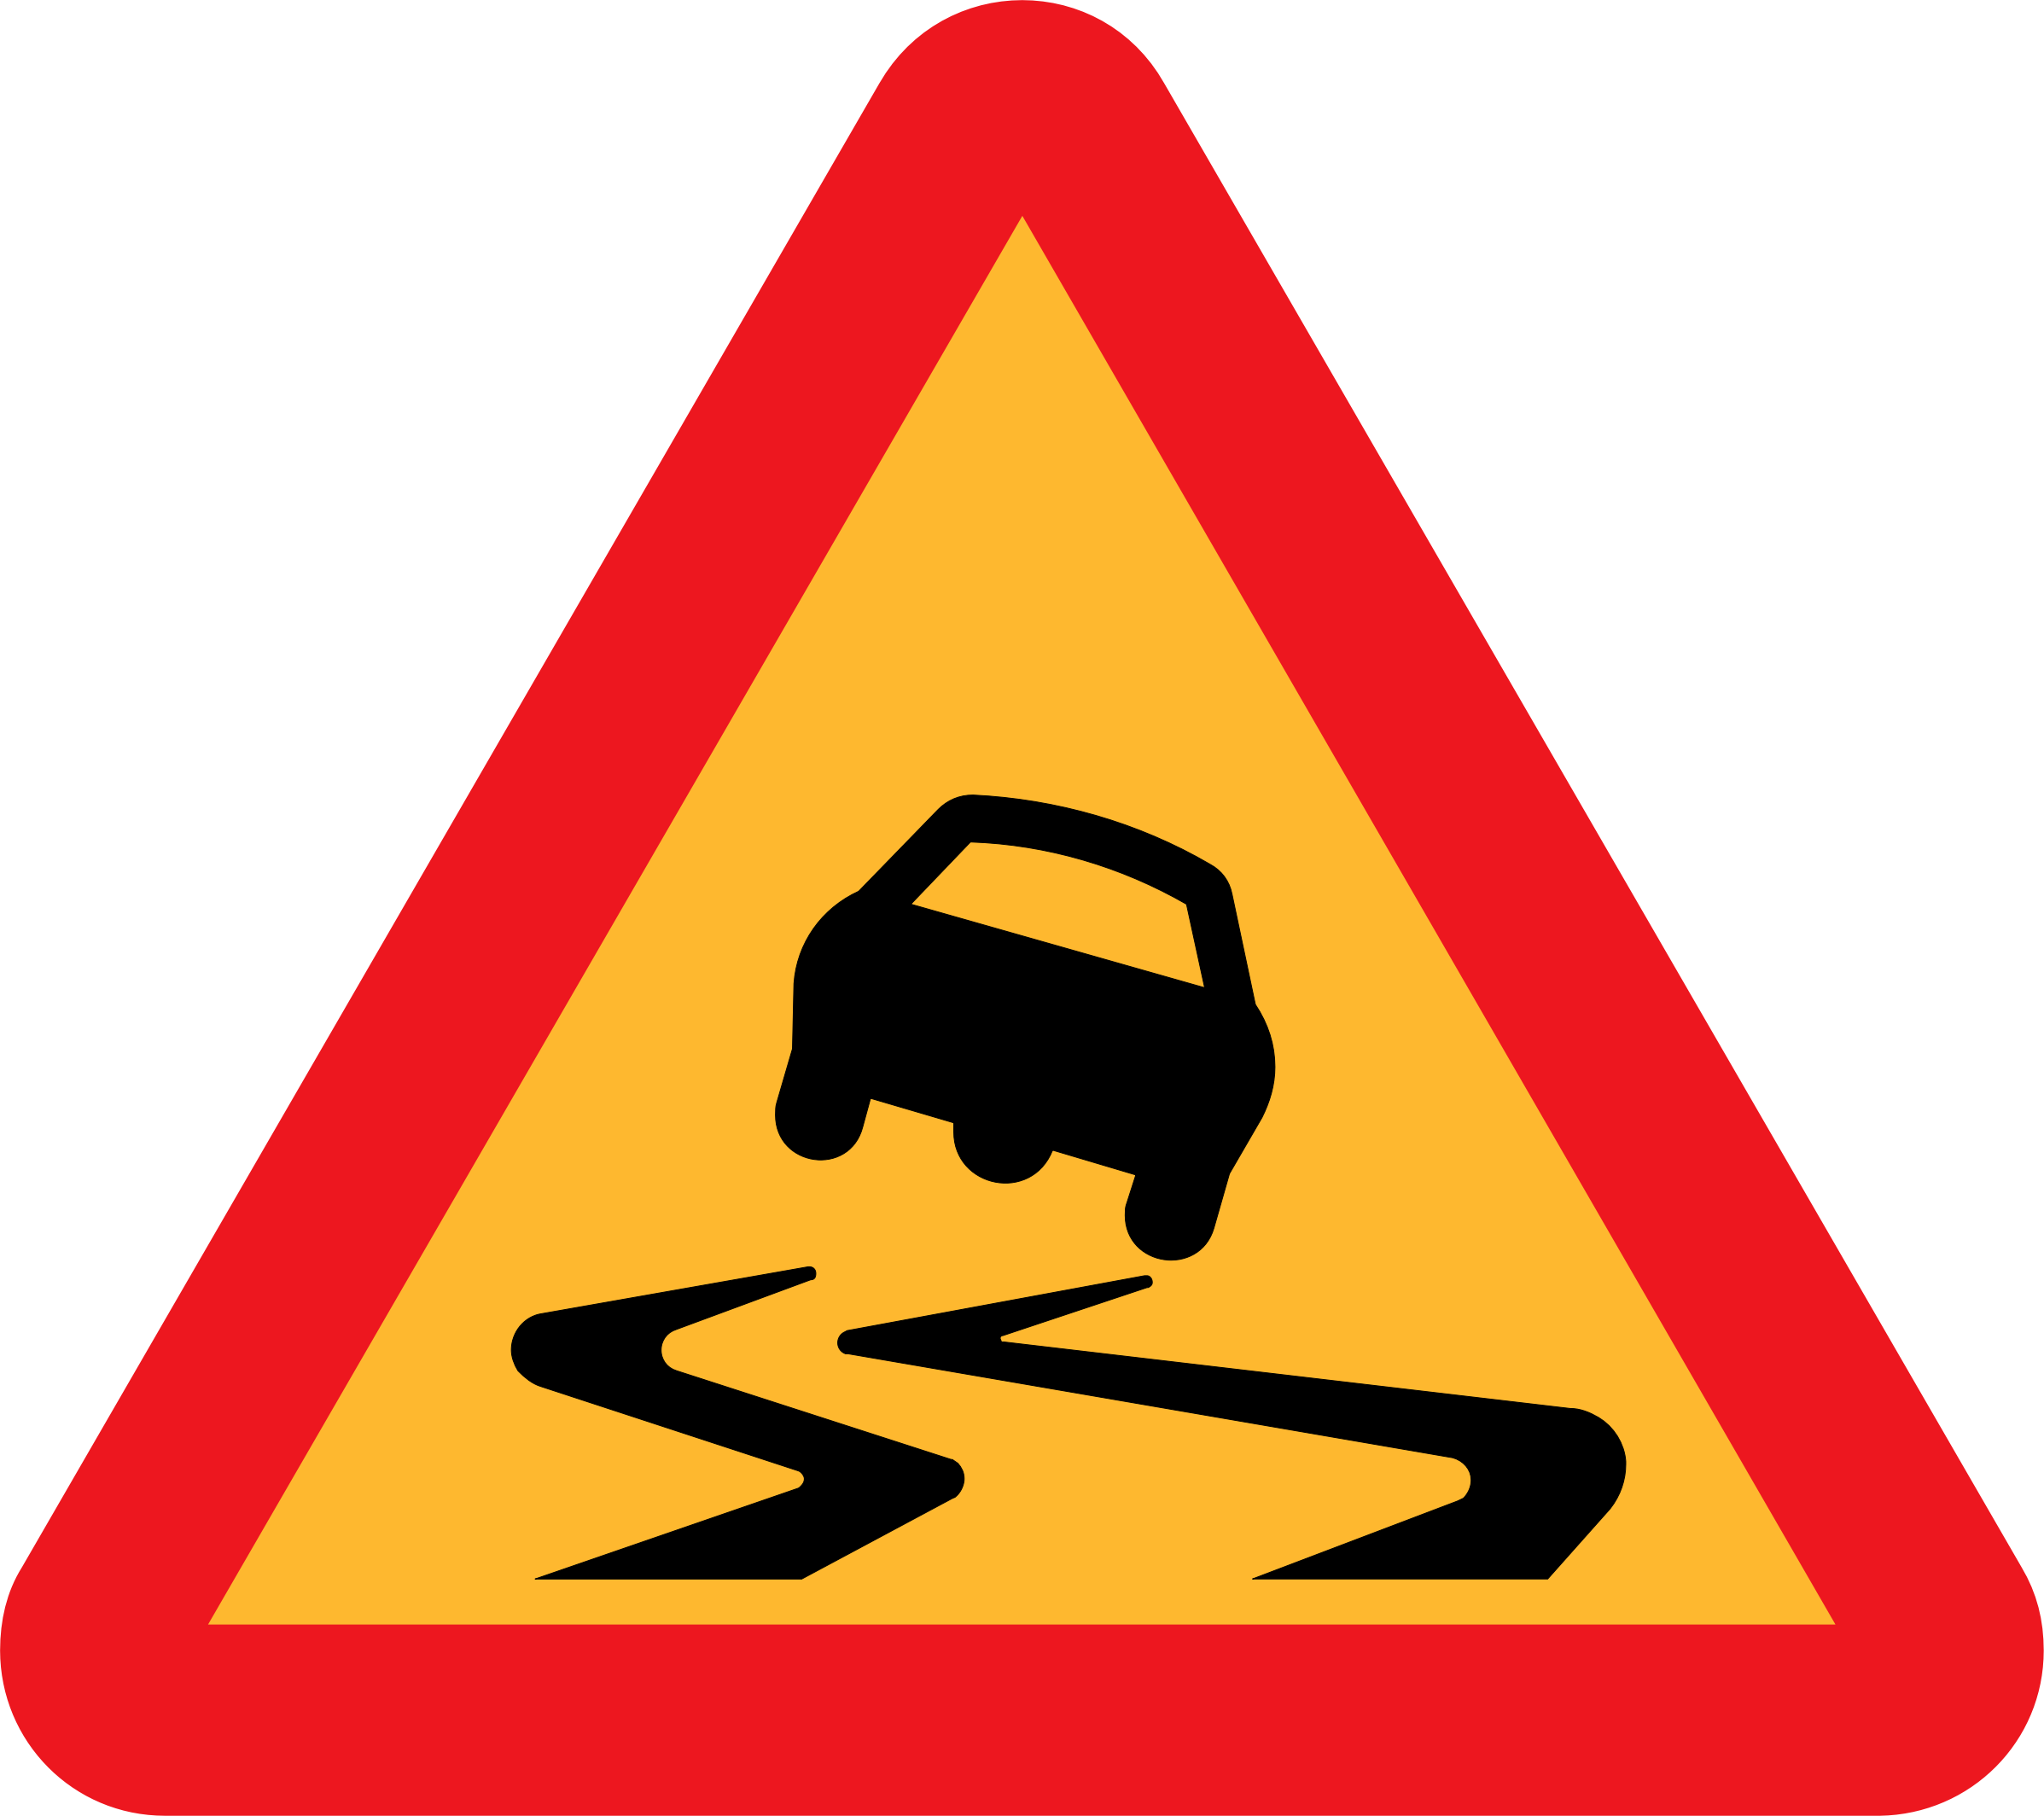 Slippery Roadsign by ryanlerch